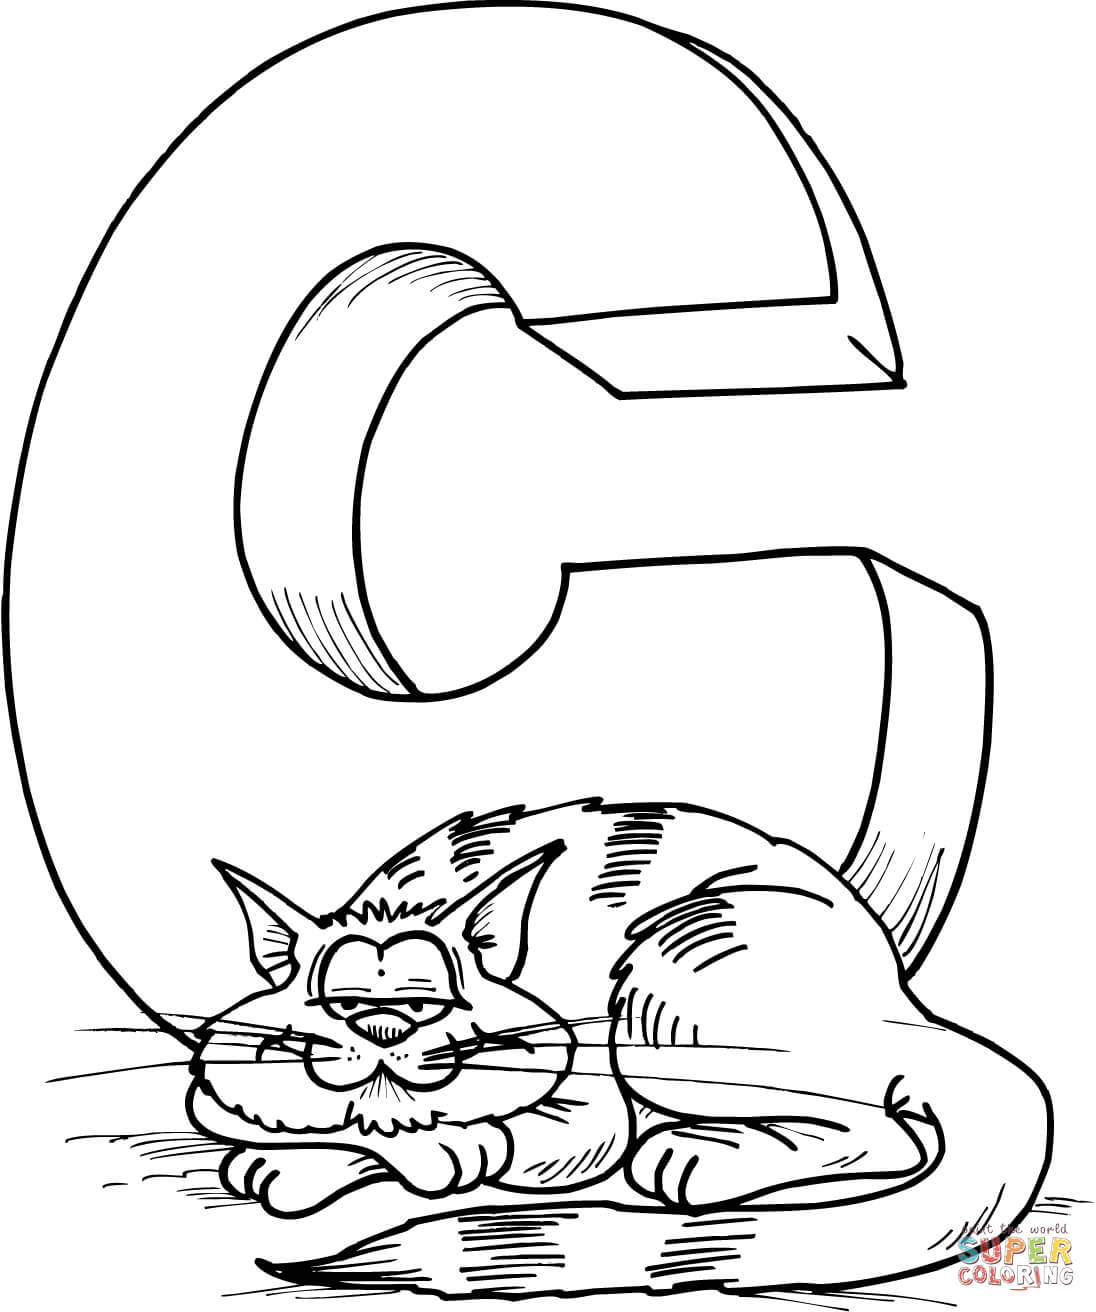 1096x1312 Letter C Is For Cat Coloring Page Free Printable Pages